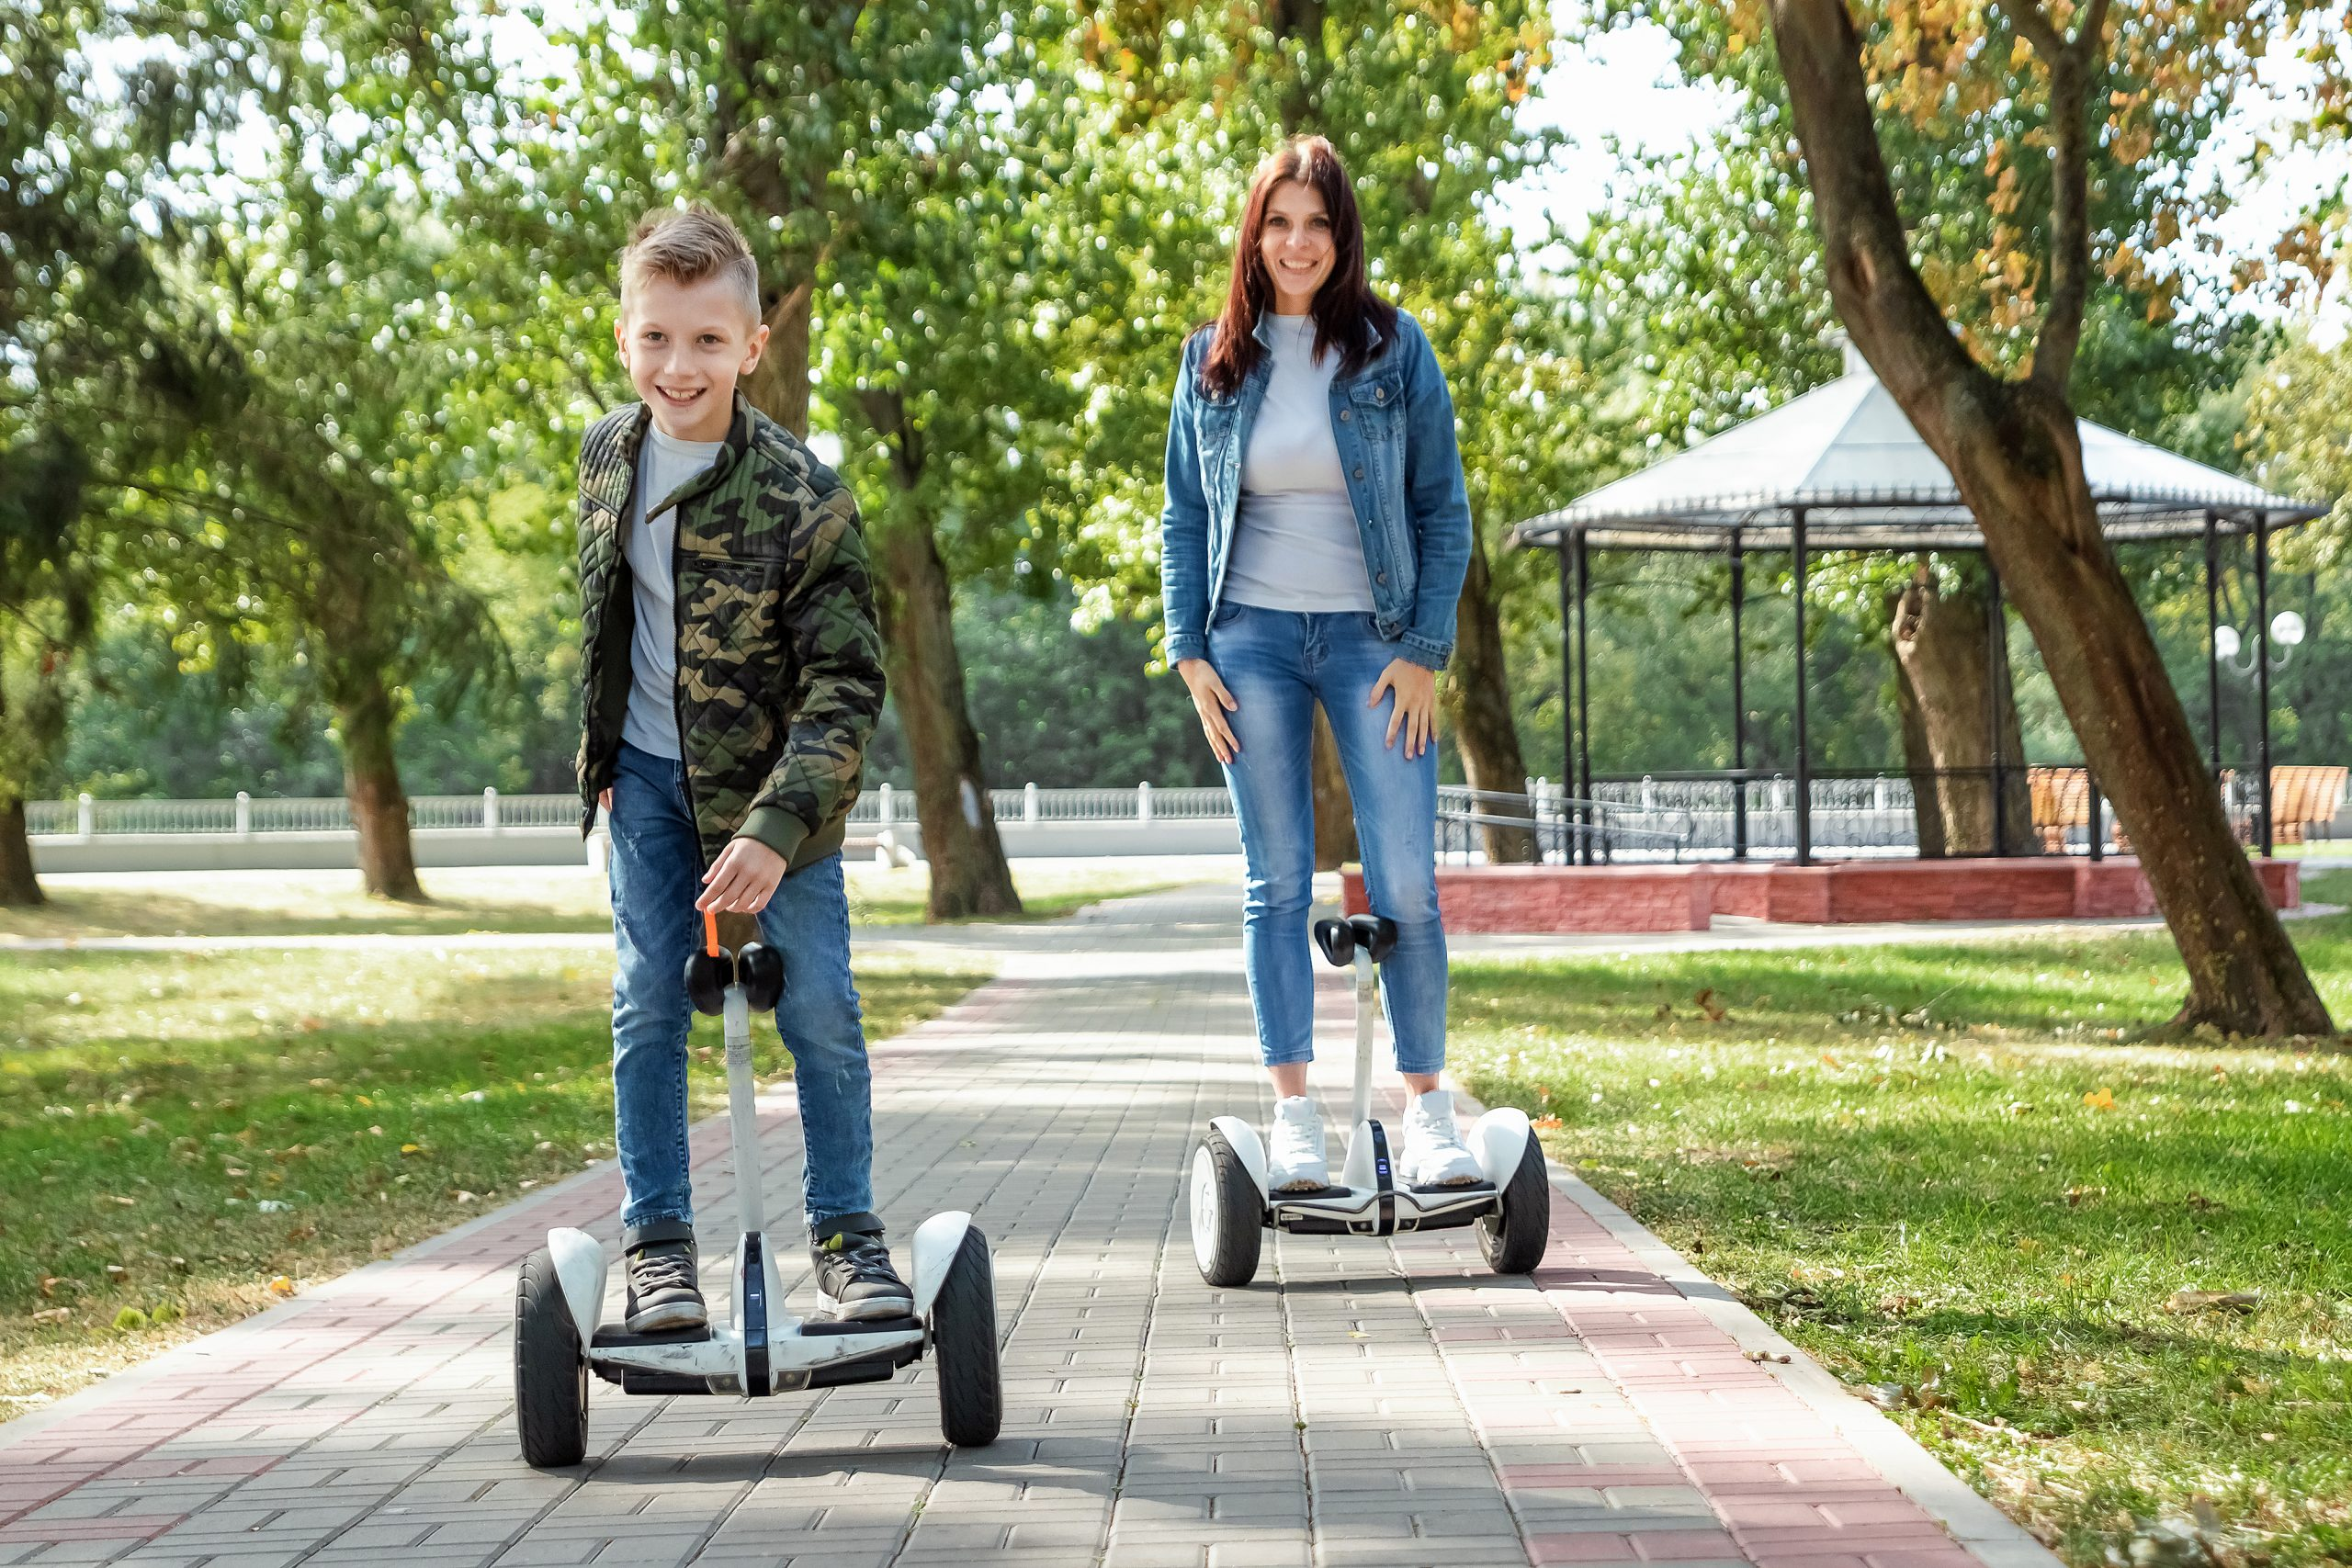 Mom and son ride a hoverboard